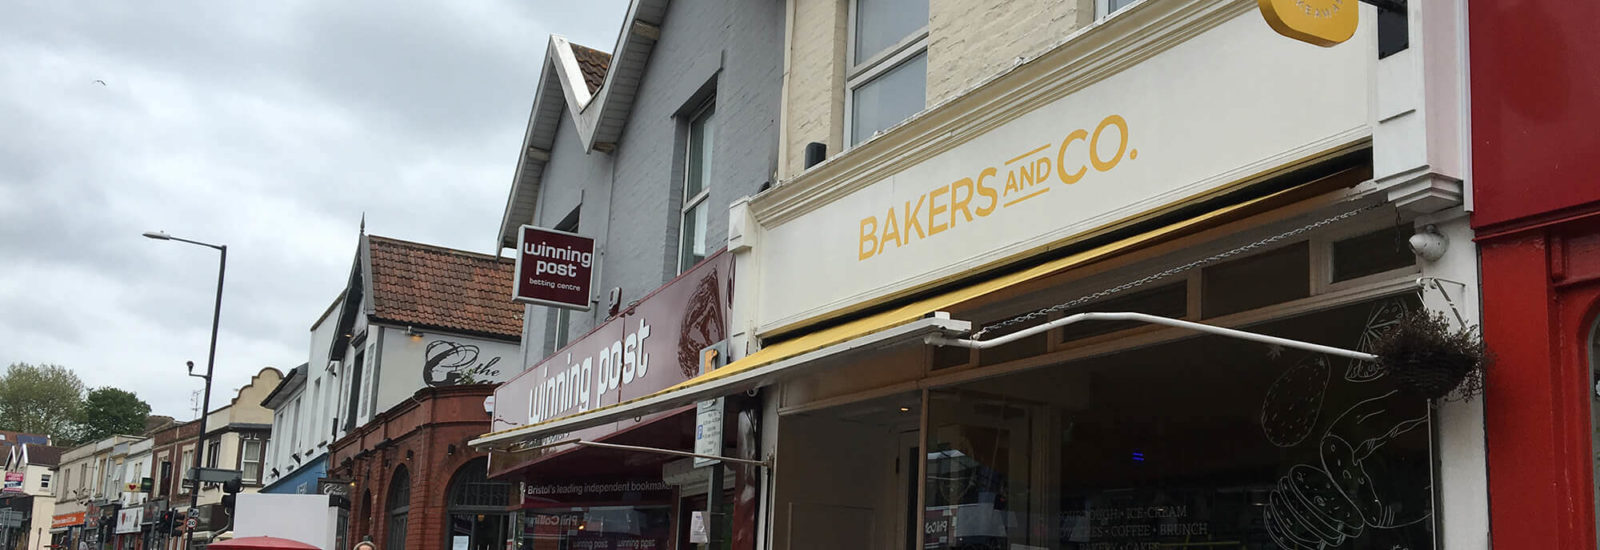 Image of Bakers & Co